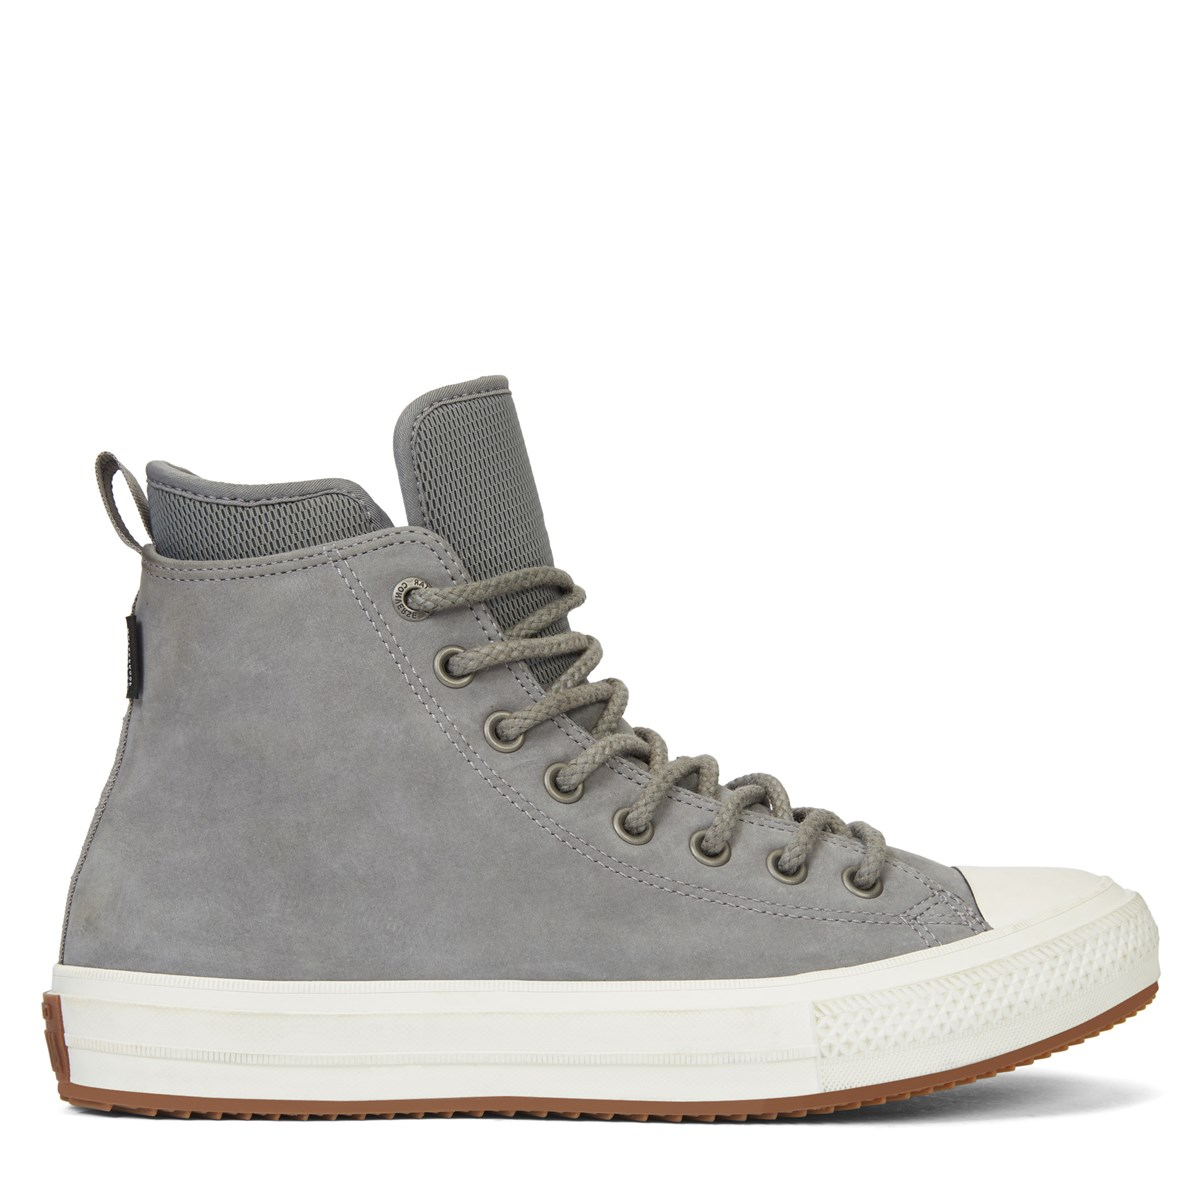 Men's Chuck Taylor All Star Waterproof Boots in Grey